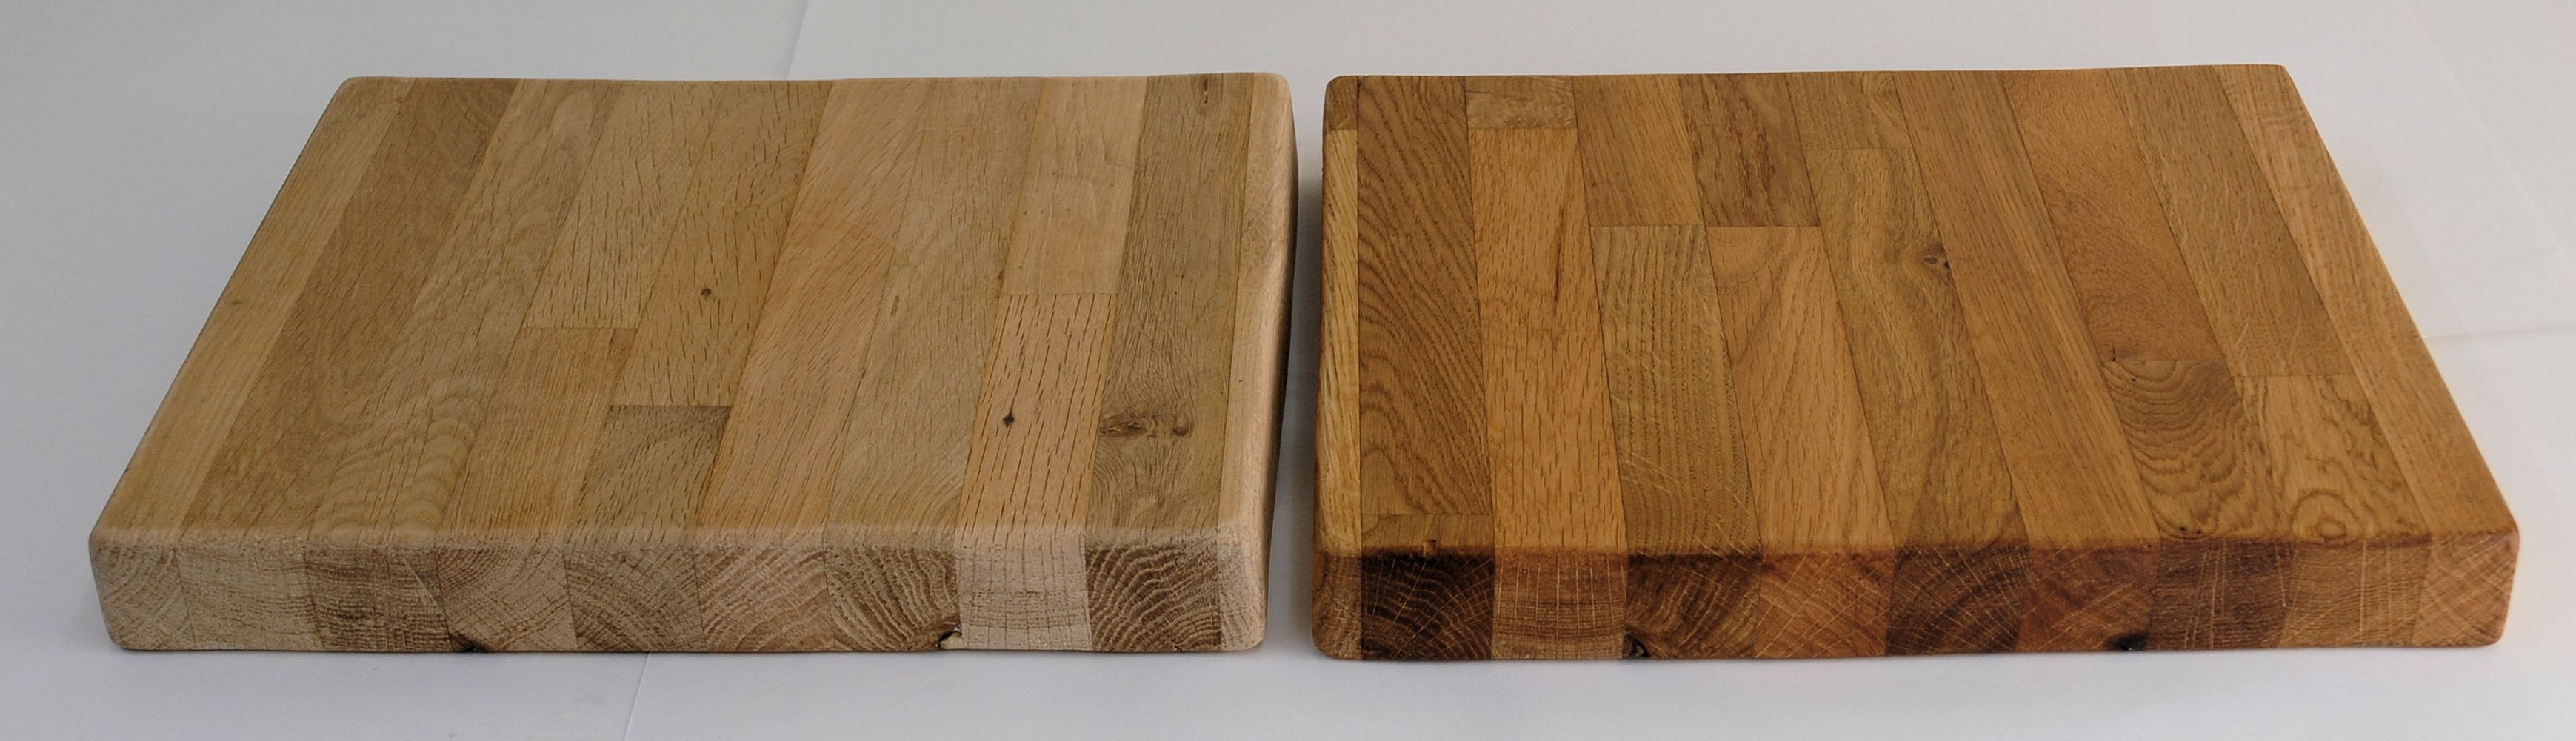 Tung oil vs danish oil - Danish Oil Before And After